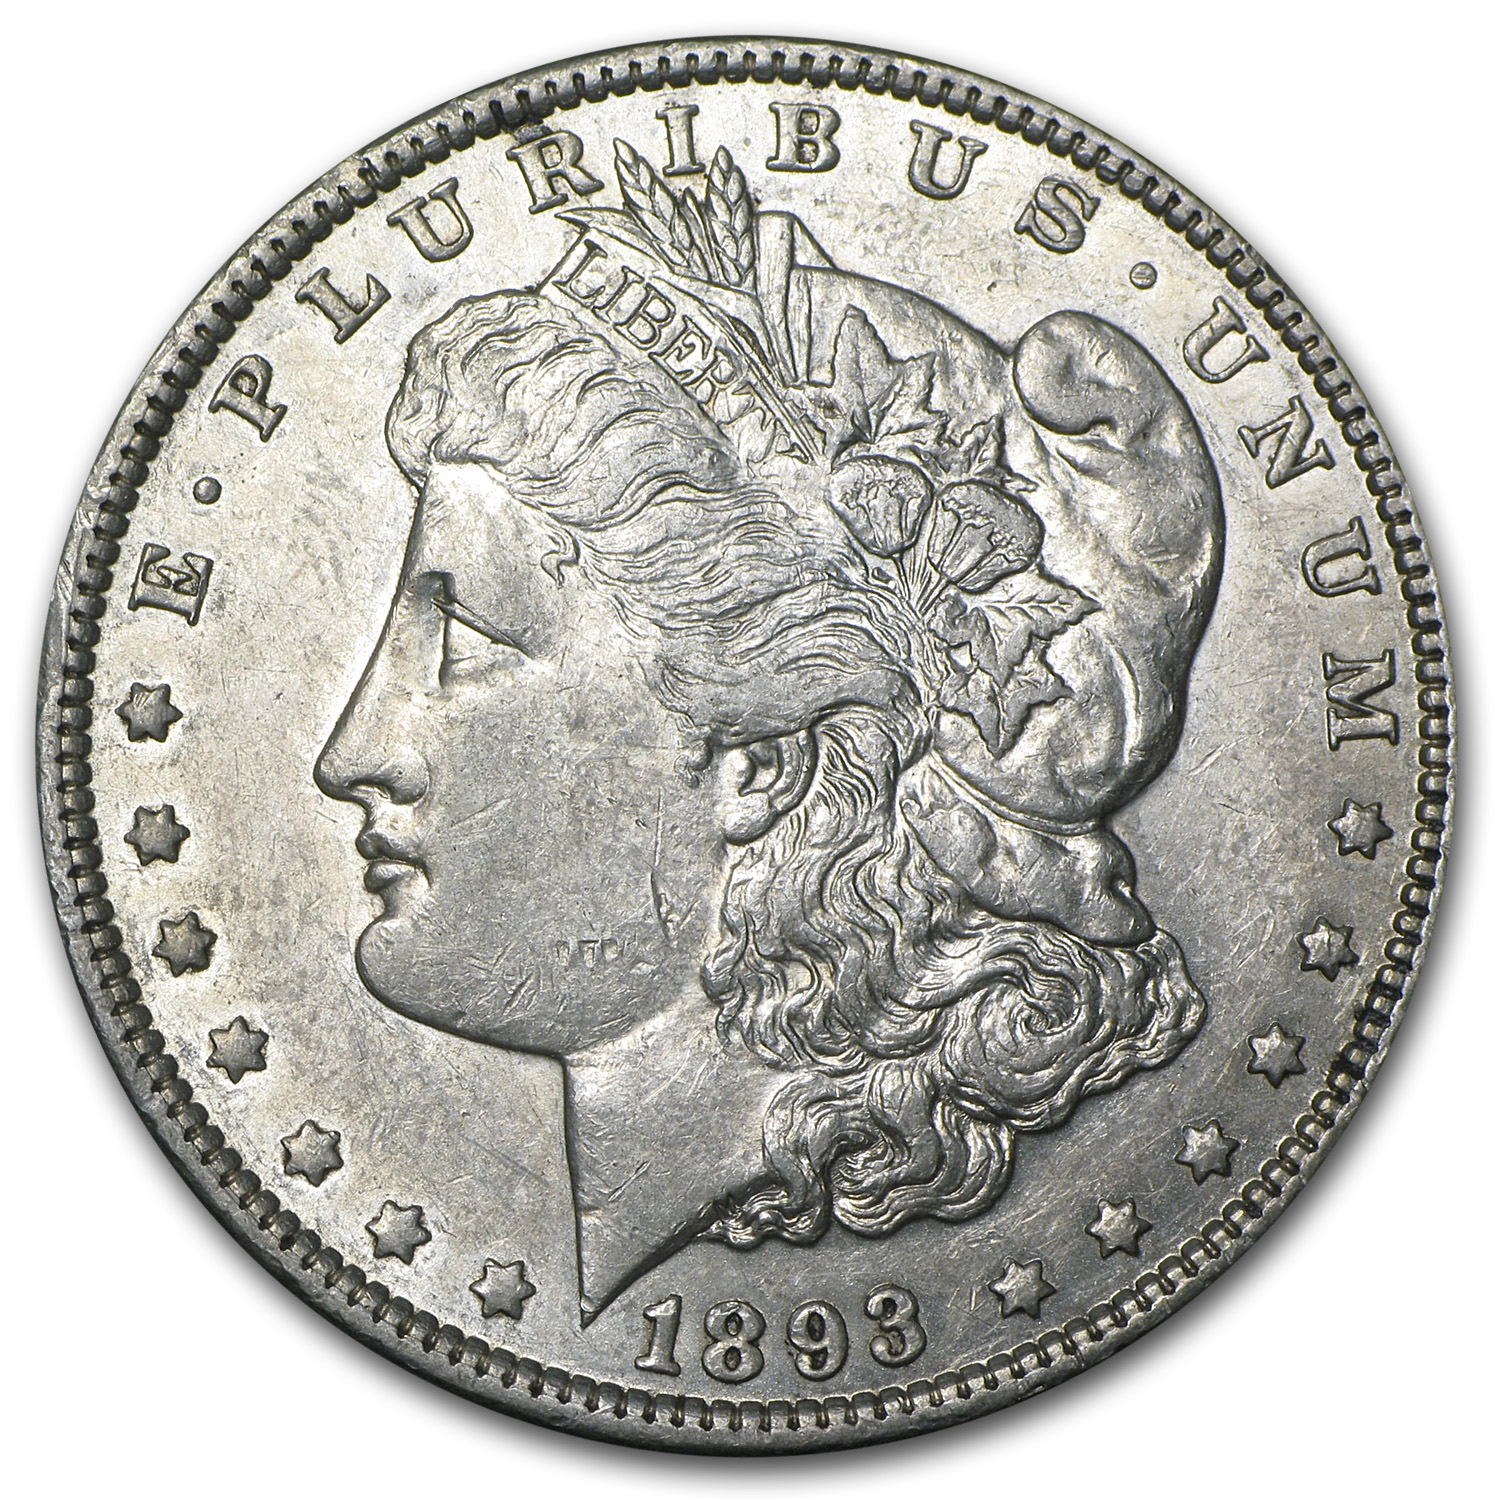 1893 Morgan Dollar - Almost Uncirculated